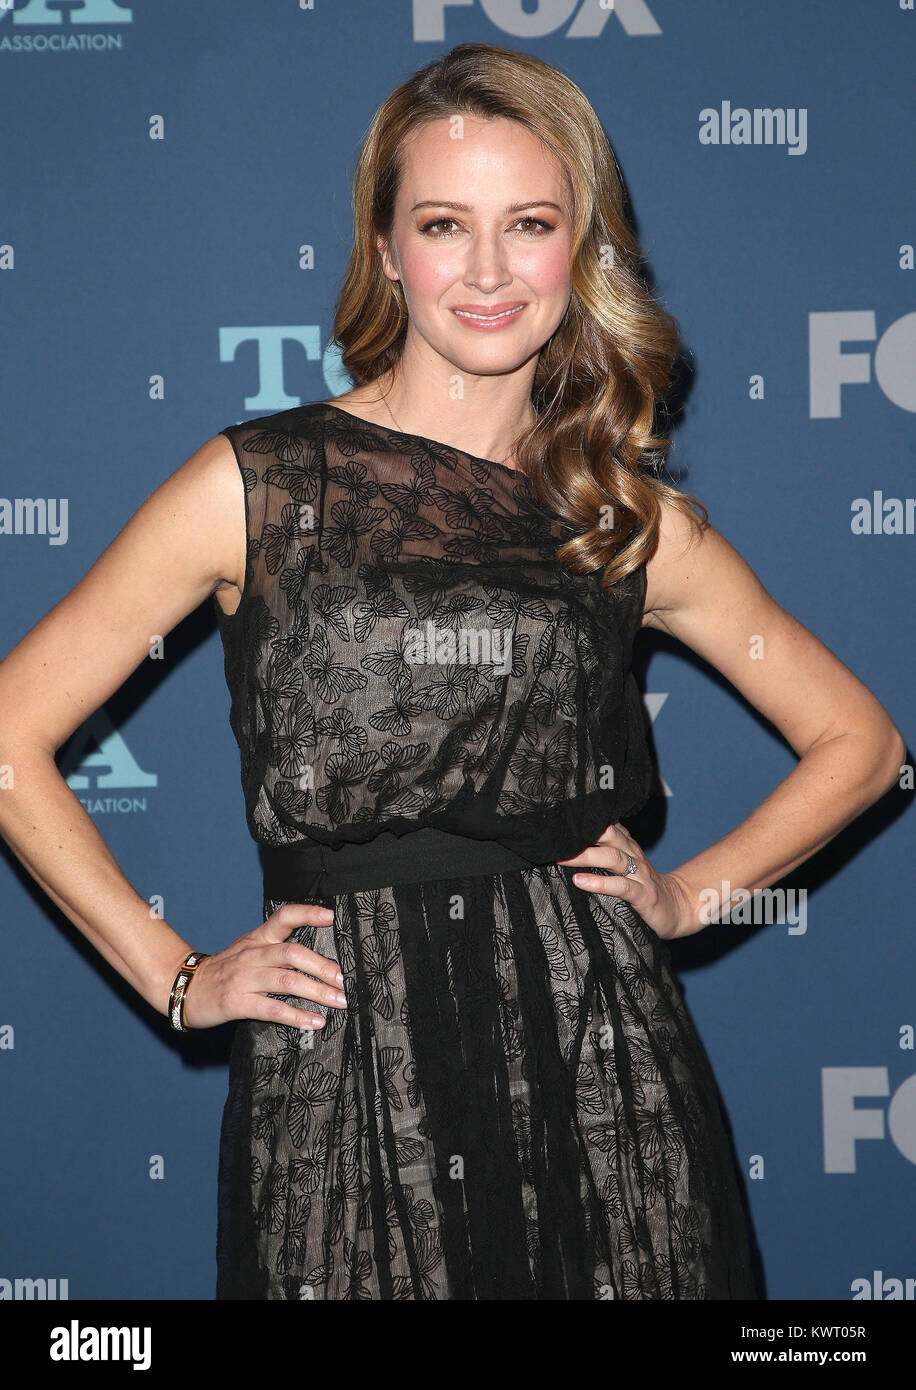 Amy Acker Nackt 4 255 stock photos & 4 255 stock images - page 3 - alamy